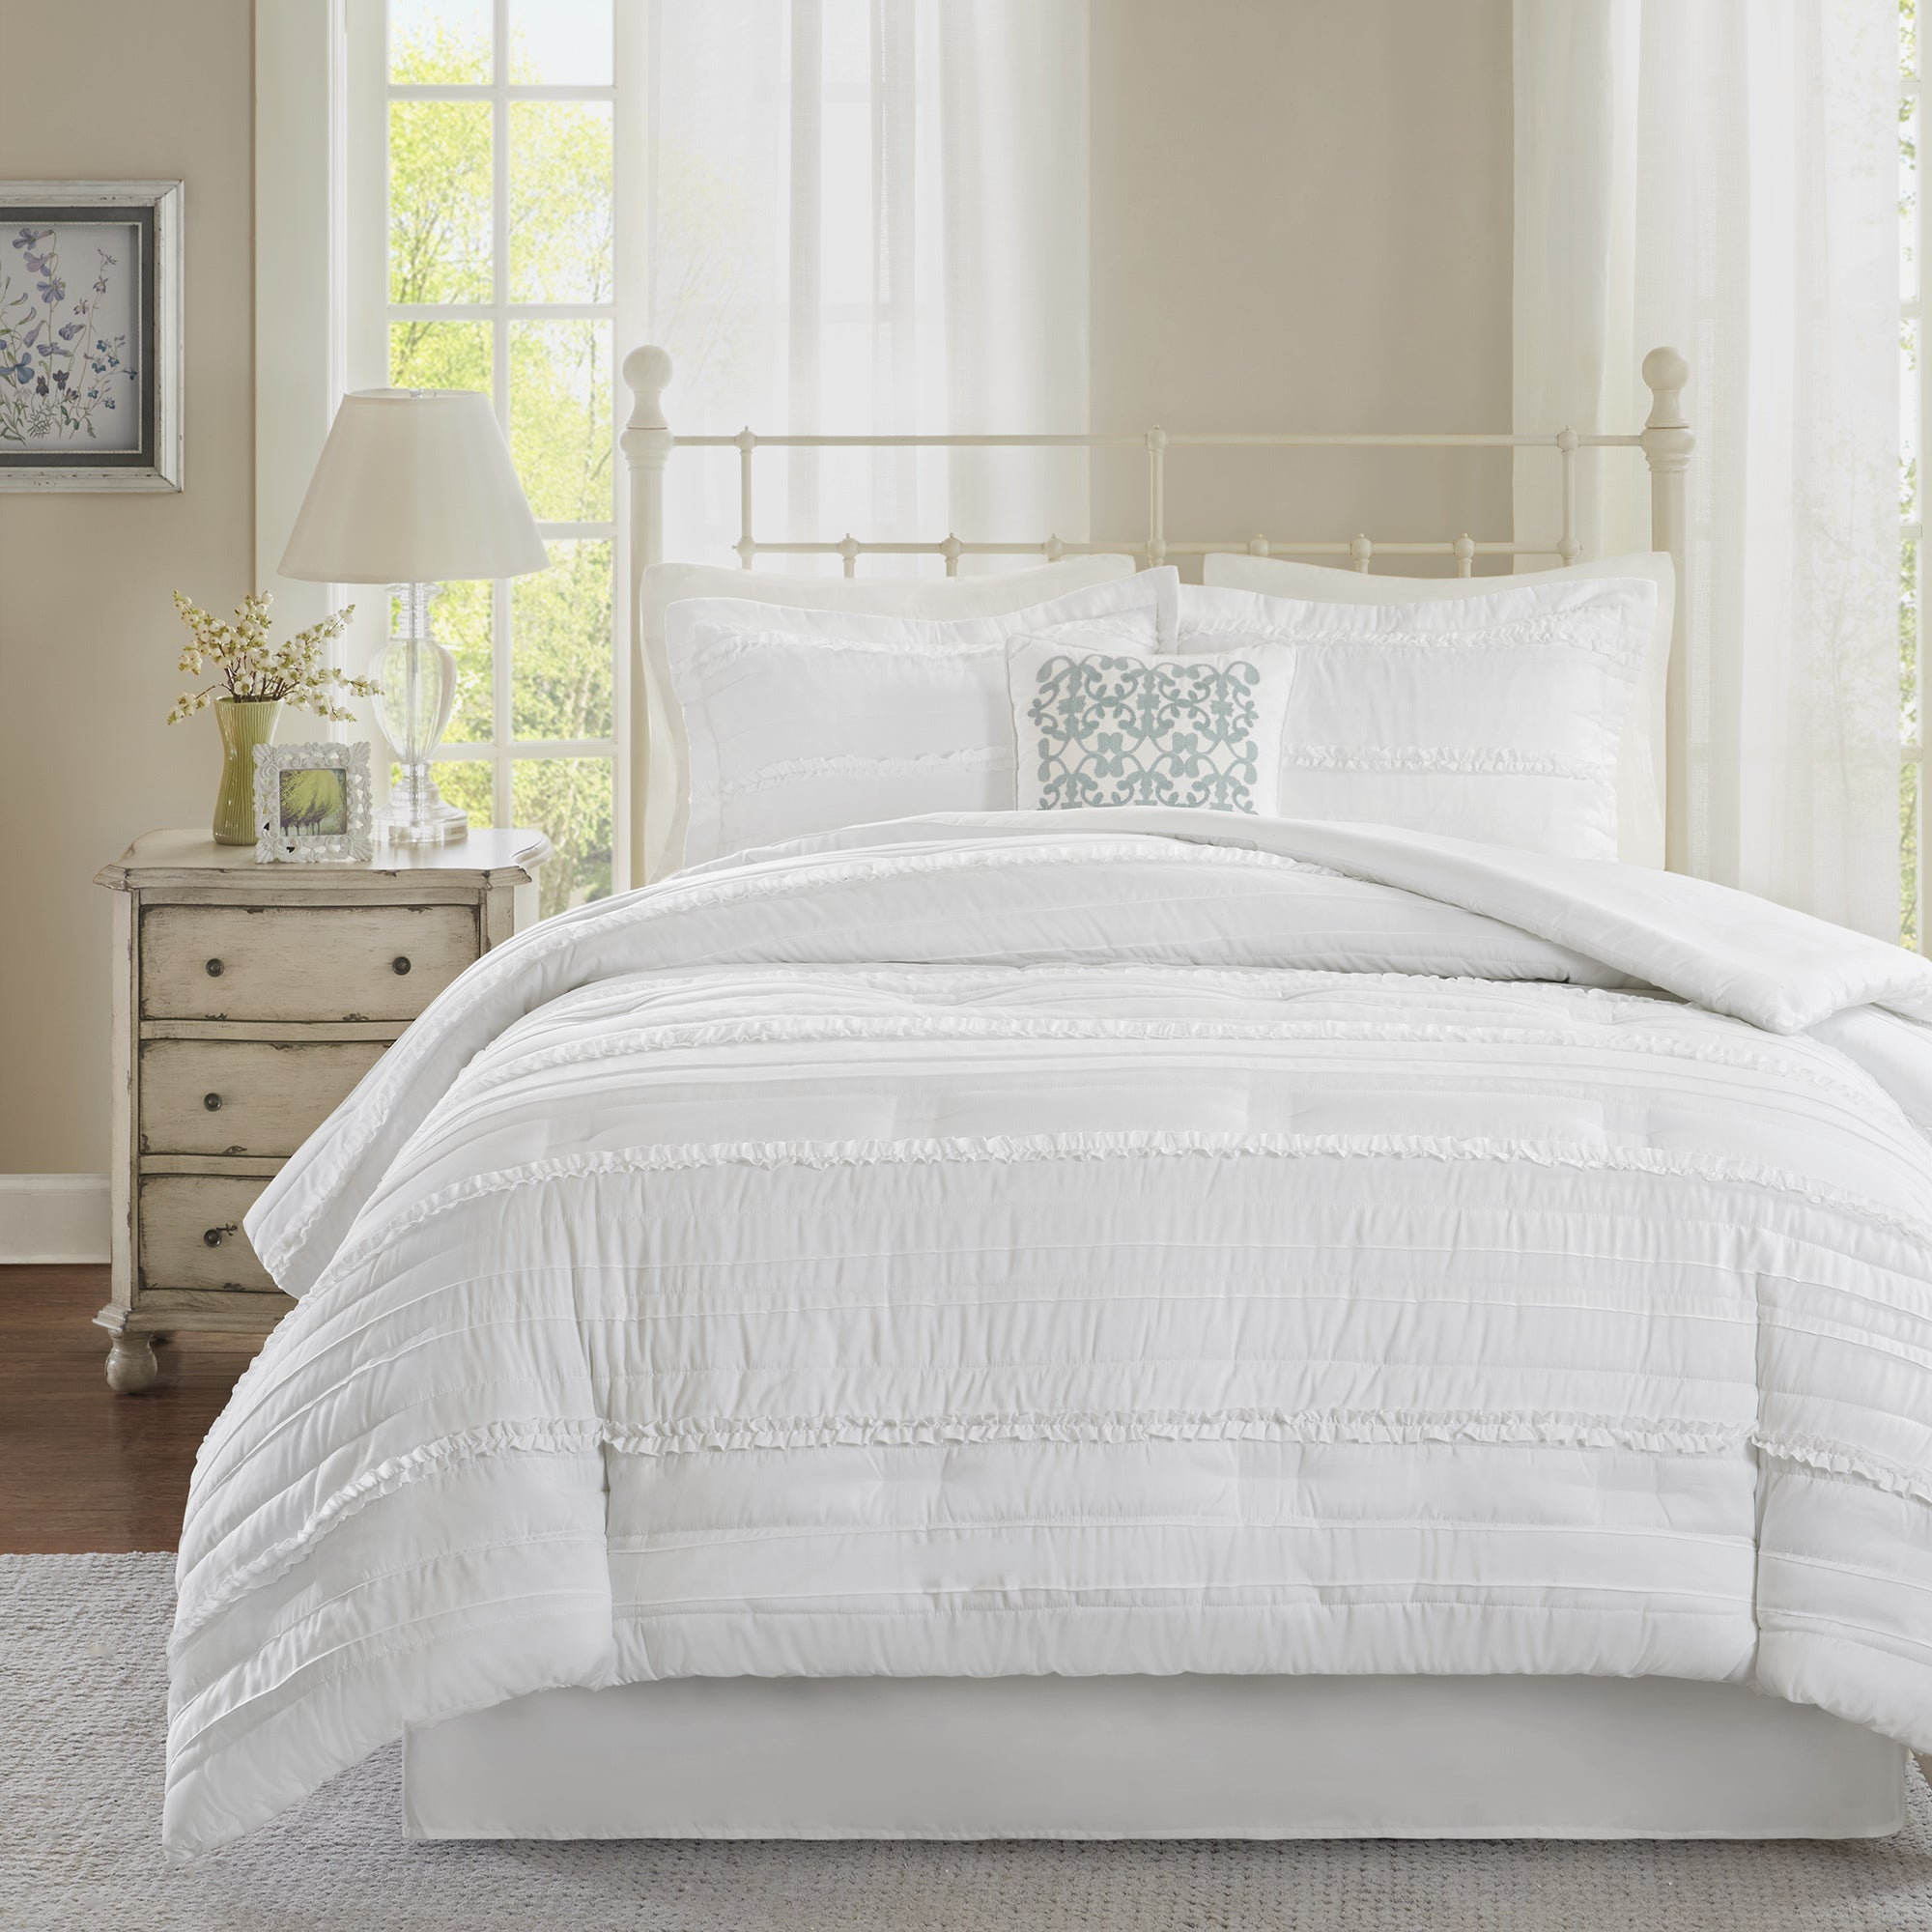 ebay white comforter of set park madison picture king p jacquard sets